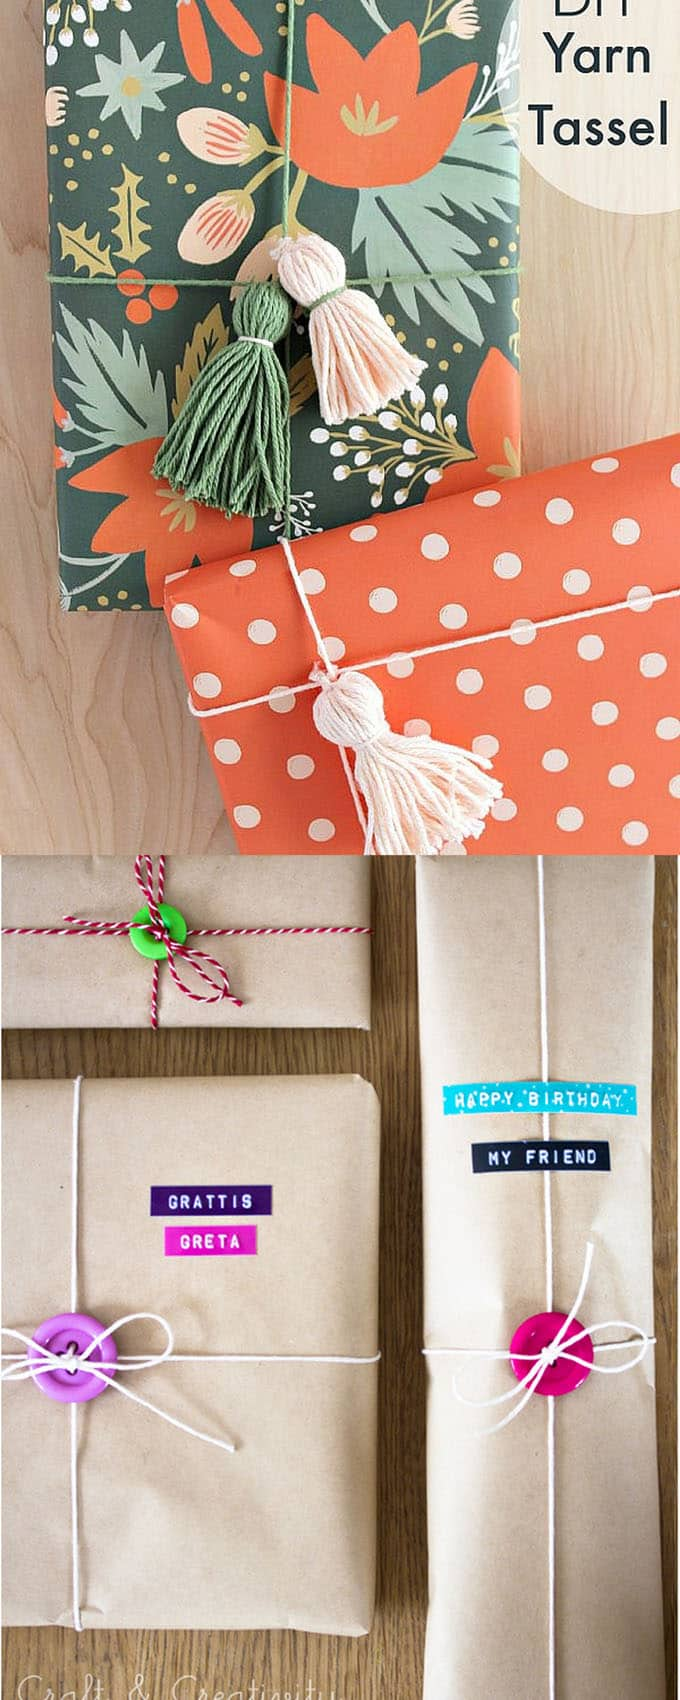 16 gift wrapping hacks apieceofrainbow 9 - 16 Favorite Easy Gift Wrapping Ideas (Many are Free!)